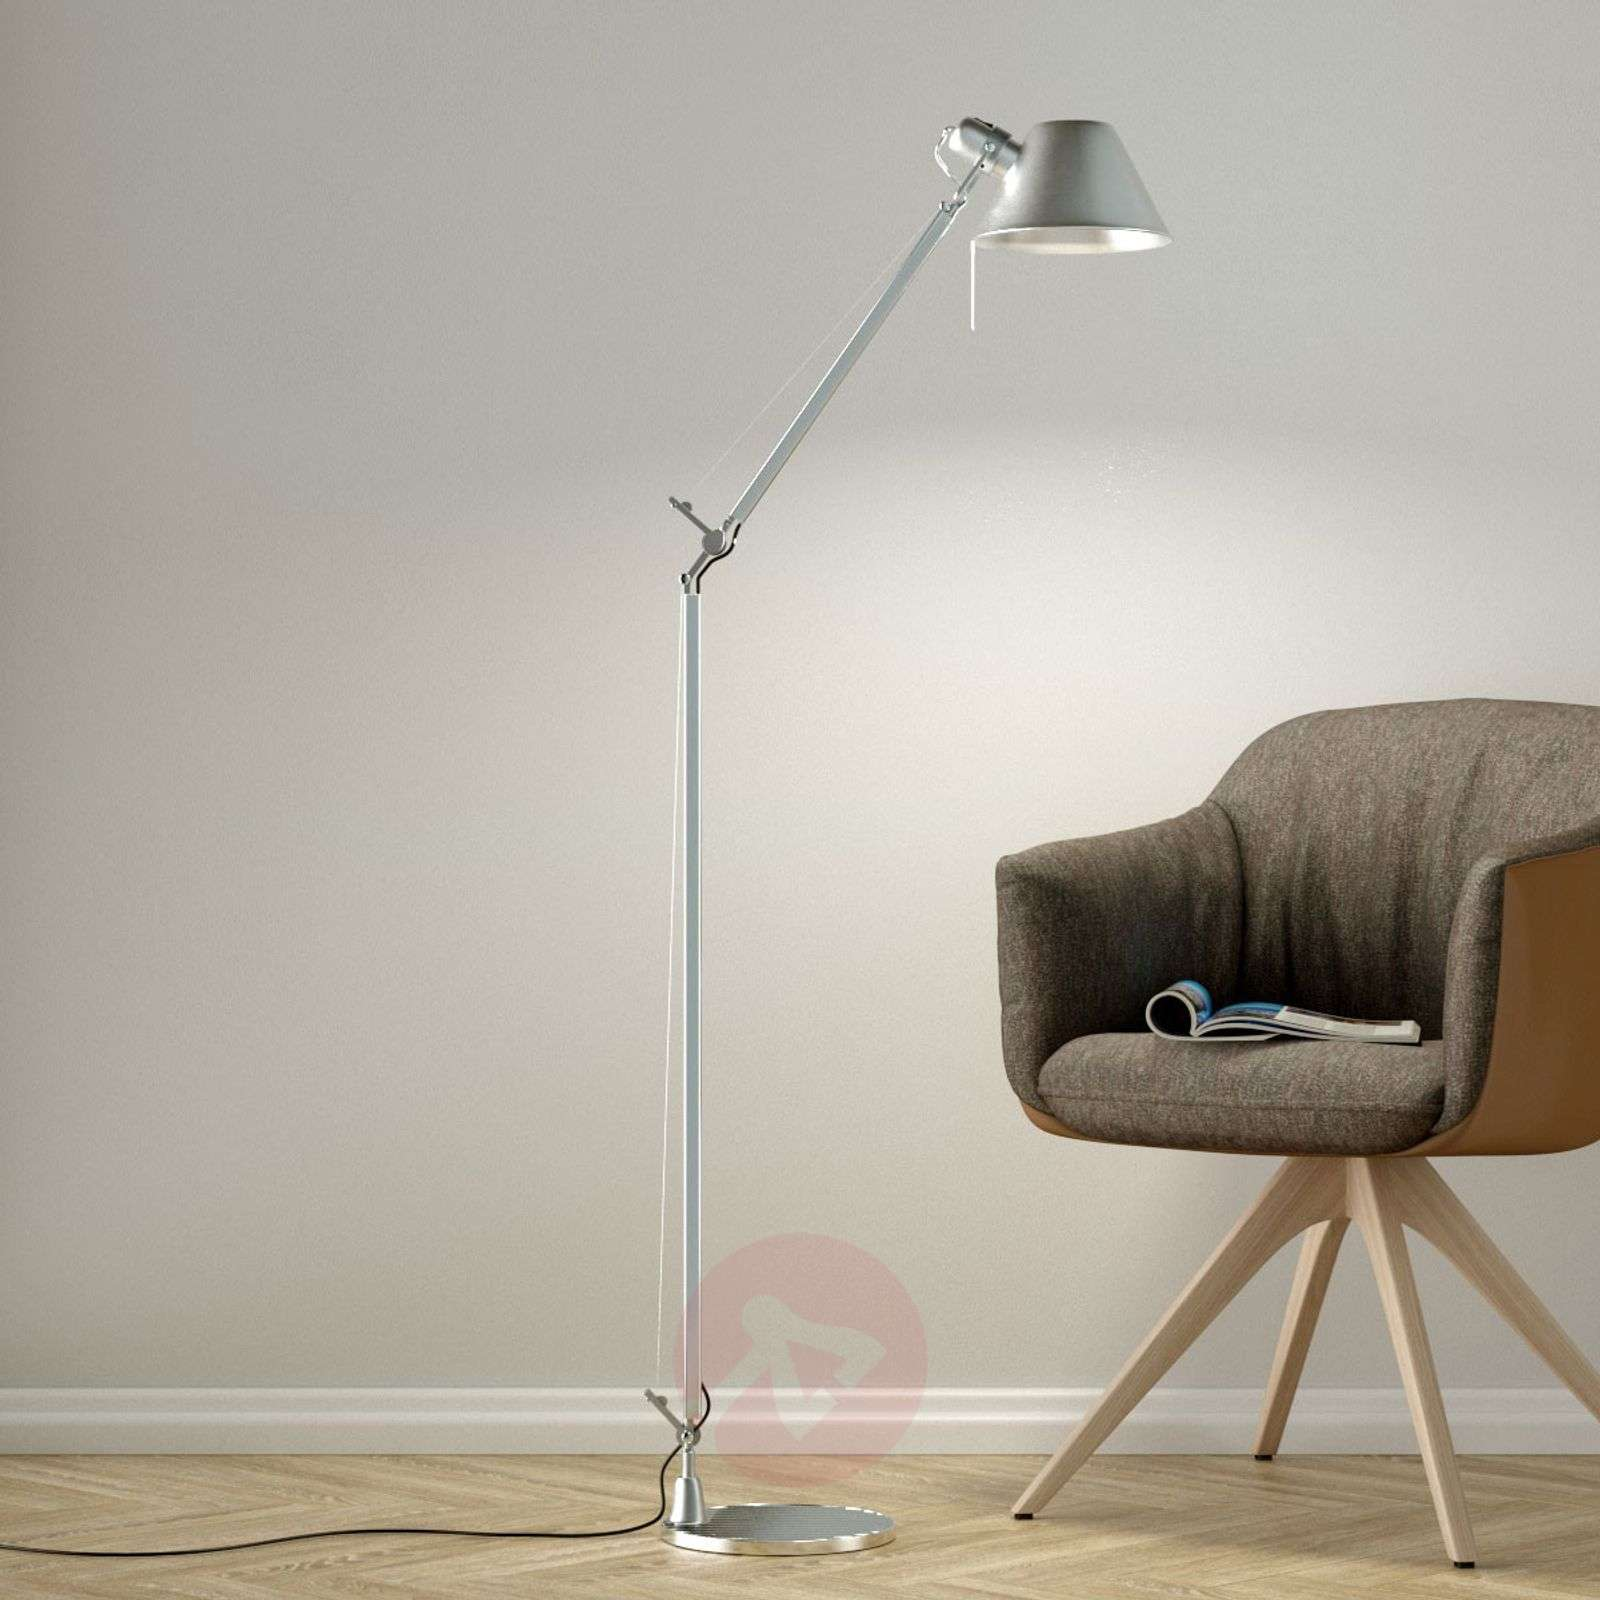 Lampadaire flexible Tolomeo Reading Floor-1060091-05